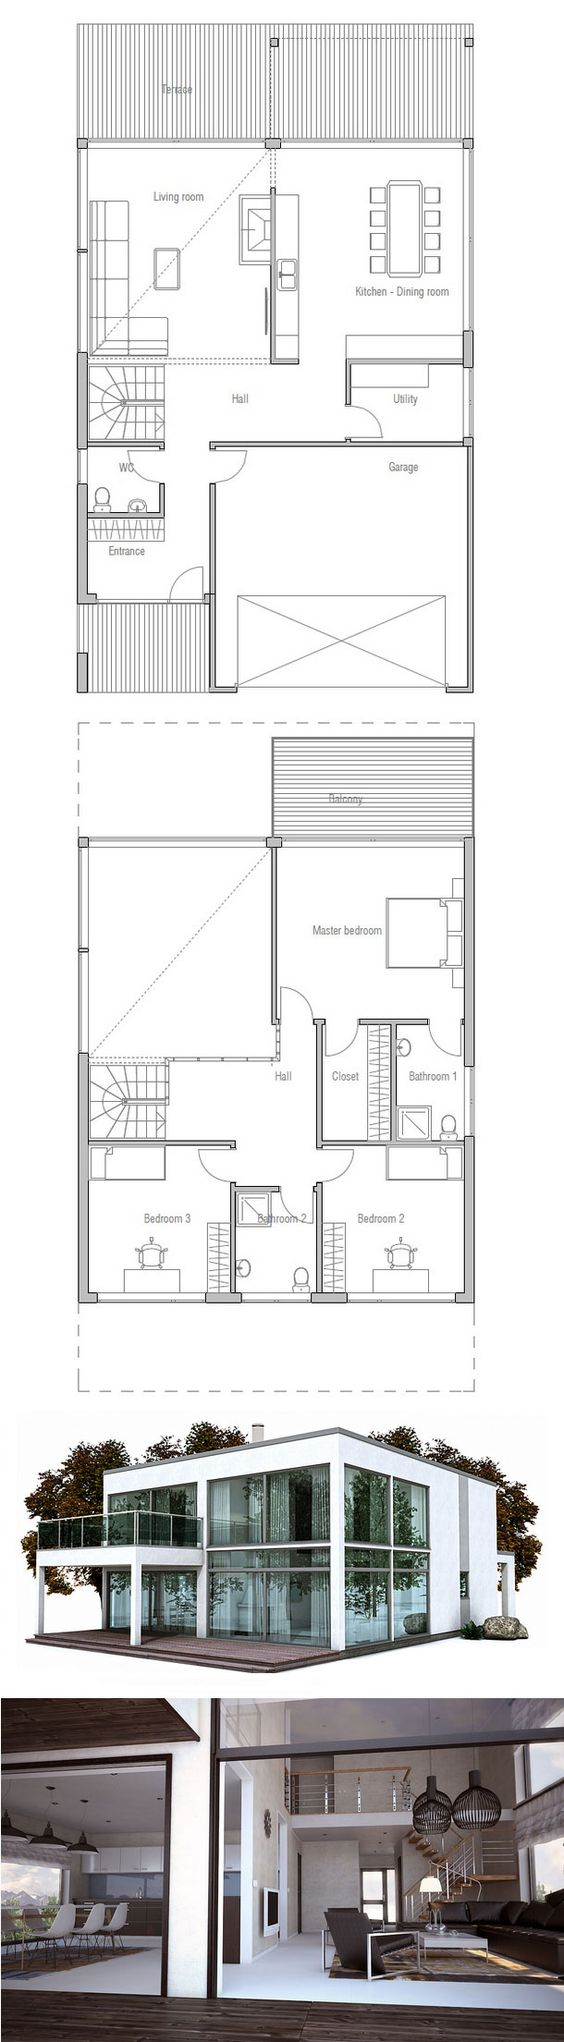 House plans window and house on pinterest - House plans lots of windows ...